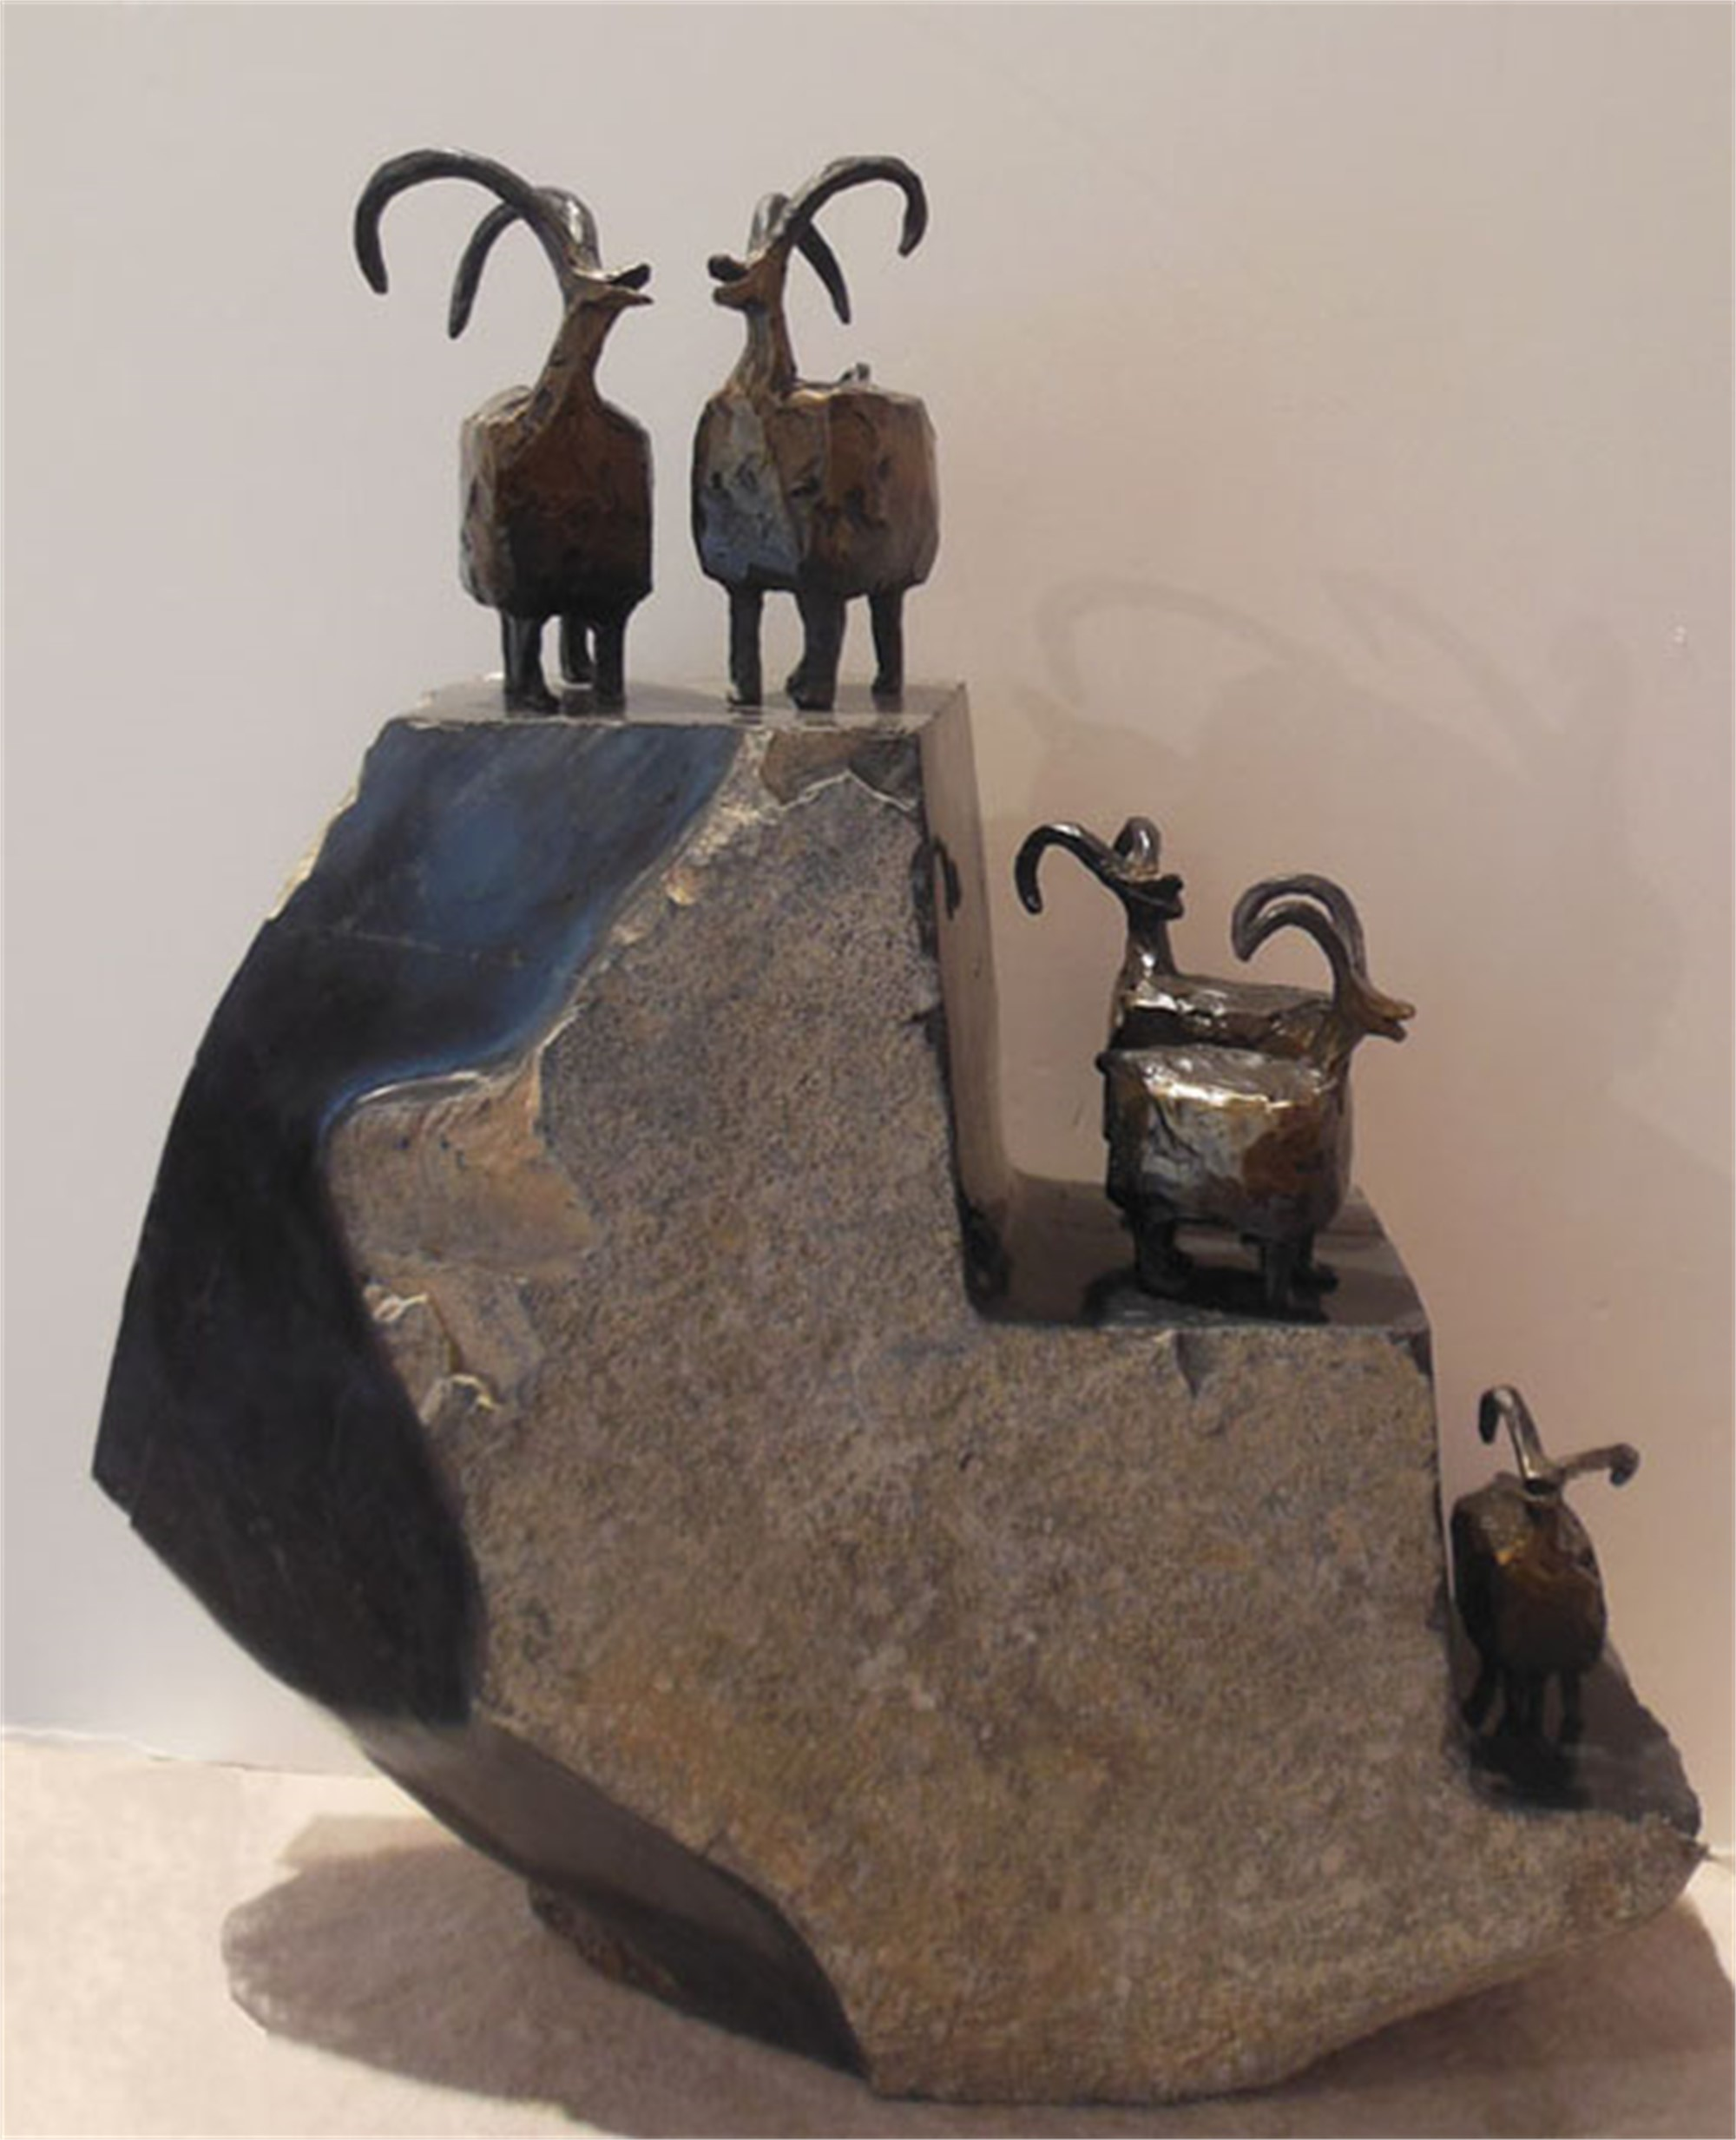 "LAUGHING SHEEP - Grouping of Five for $1500 / Individual sheep: Sm. 3"" $250 - Med 4"" $300 - Lg 5"" $350... Rock pedestal sold separately. by Jill Shwaiko"